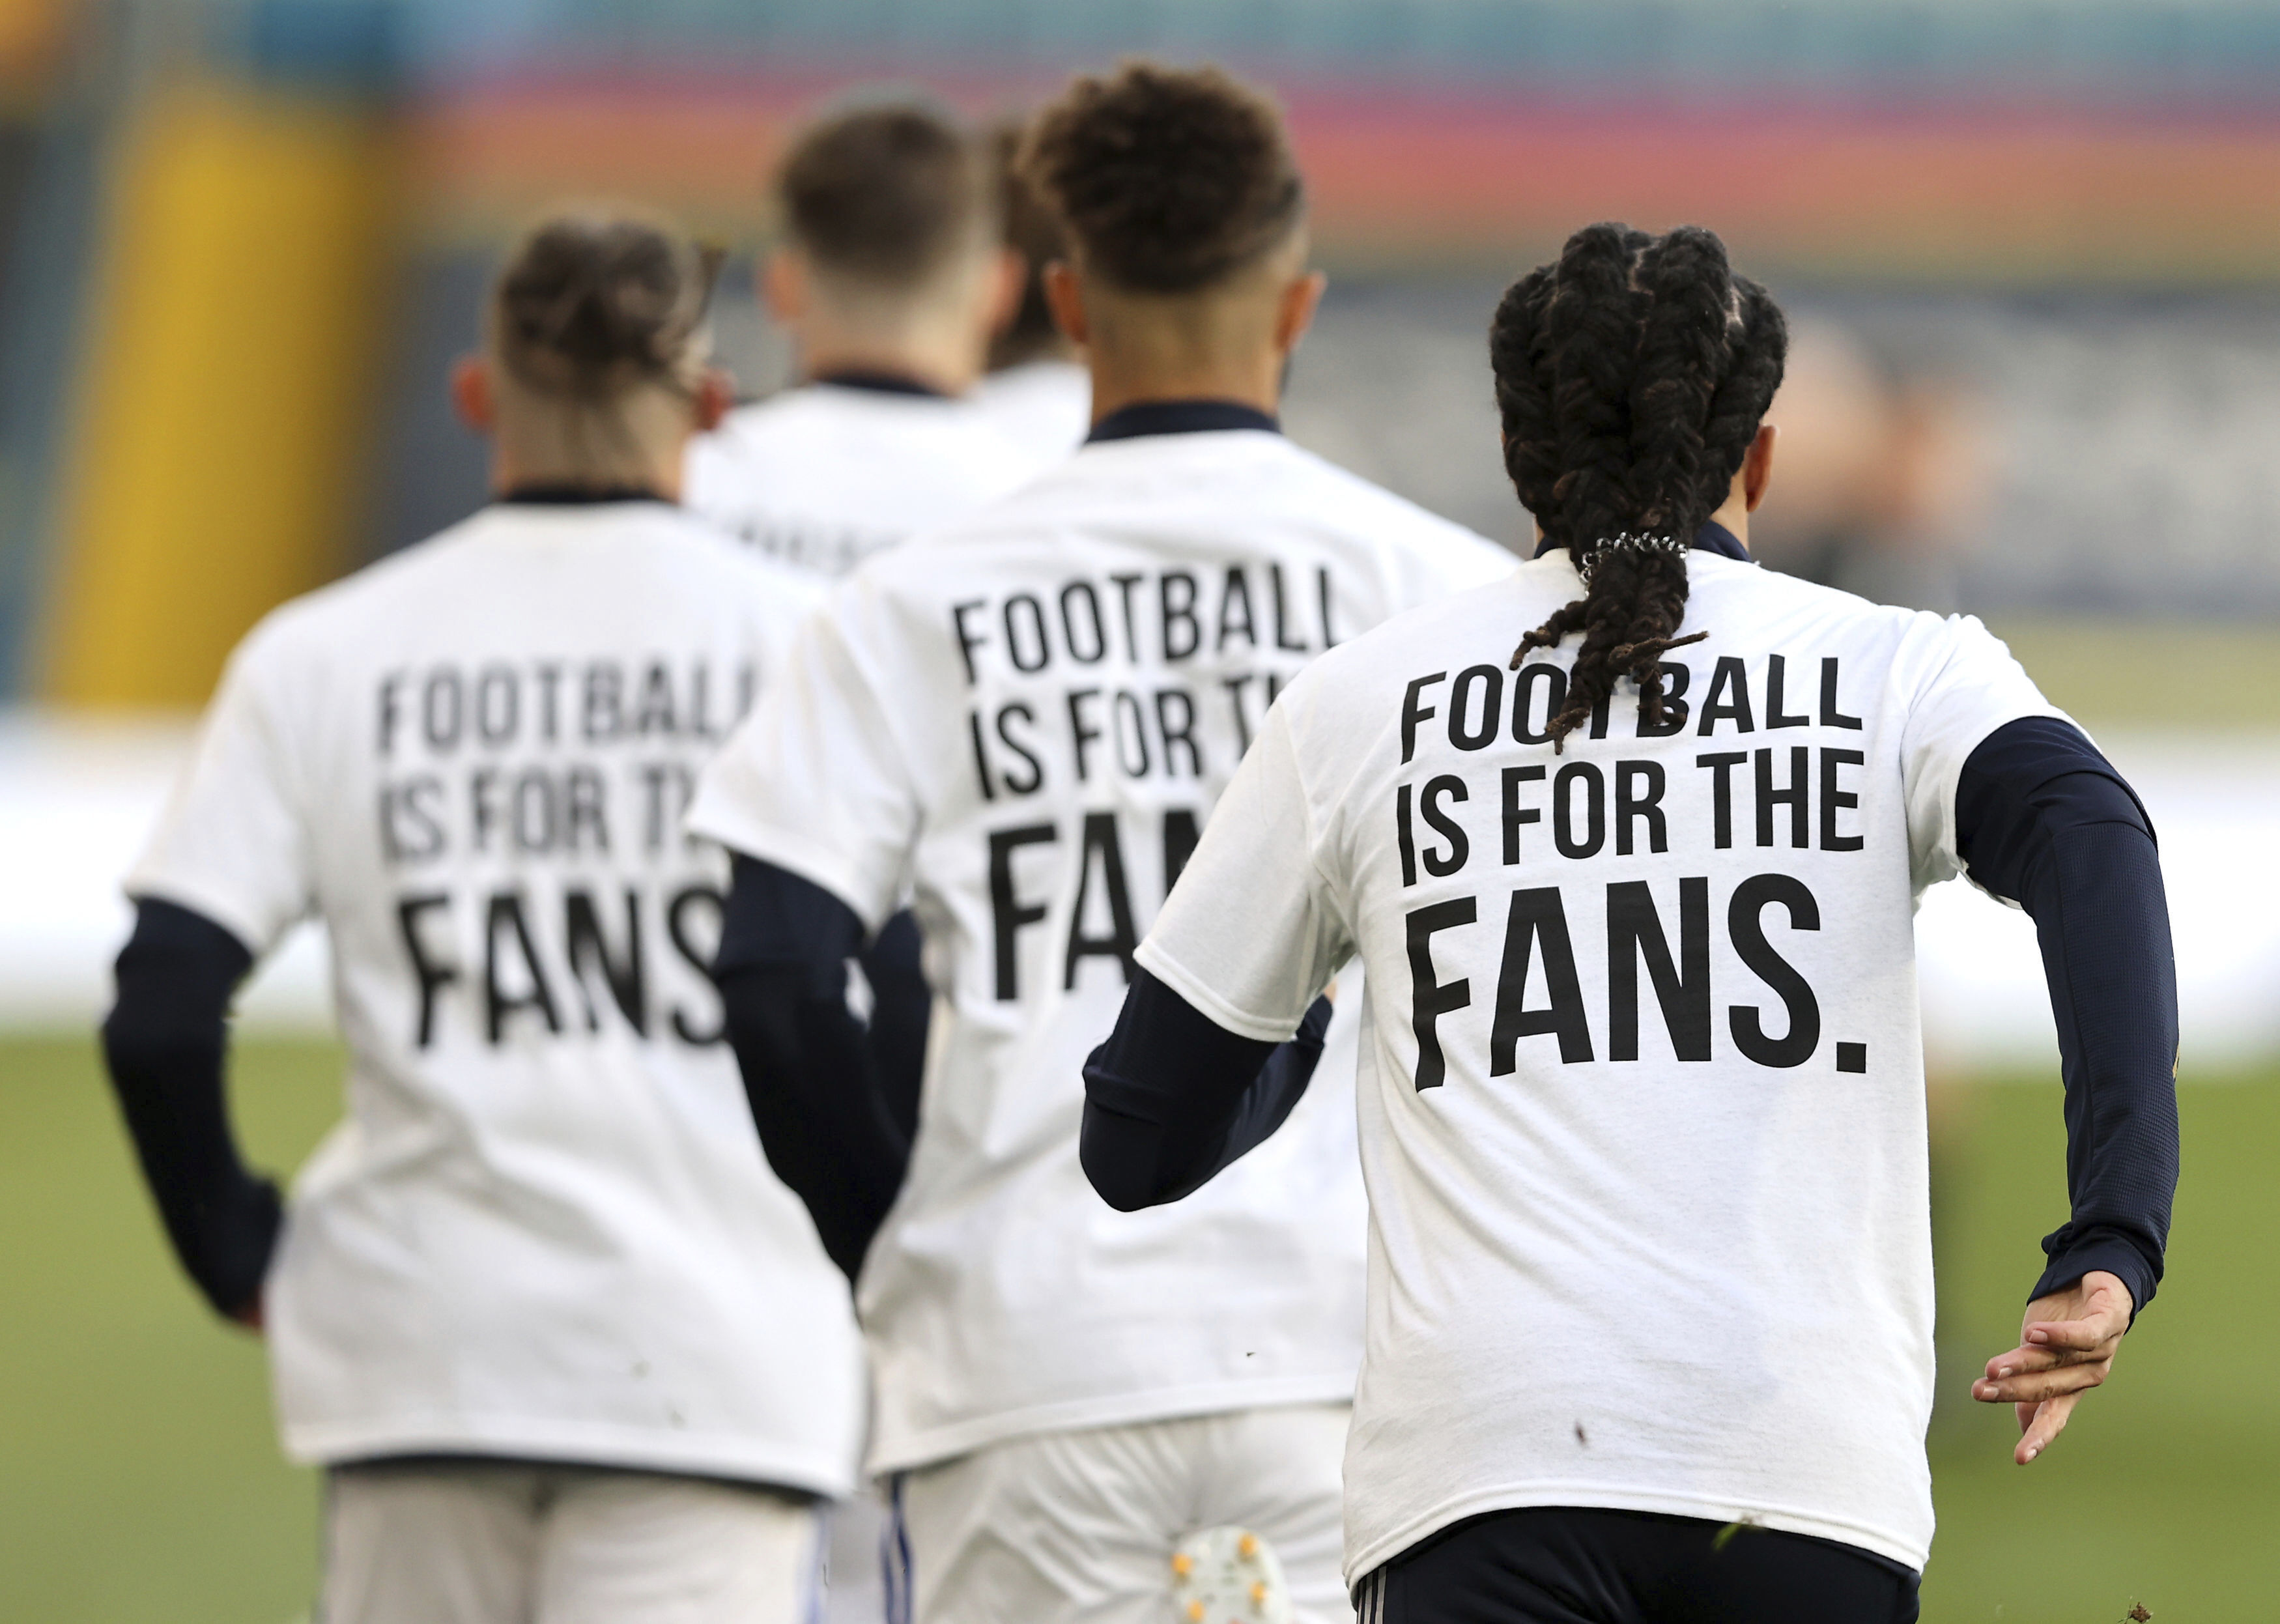 <p>Leeds United players wear t-shirts with the logo 'Football Is For The Fans' as they warm-up ahead of ahead of the English Premier League soccer match between Leeds United and Liverpool at the Elland Road stadium in Leeds, England, Monday, April 19, 2021. (Clive Brunskill/Pool via AP)</p>